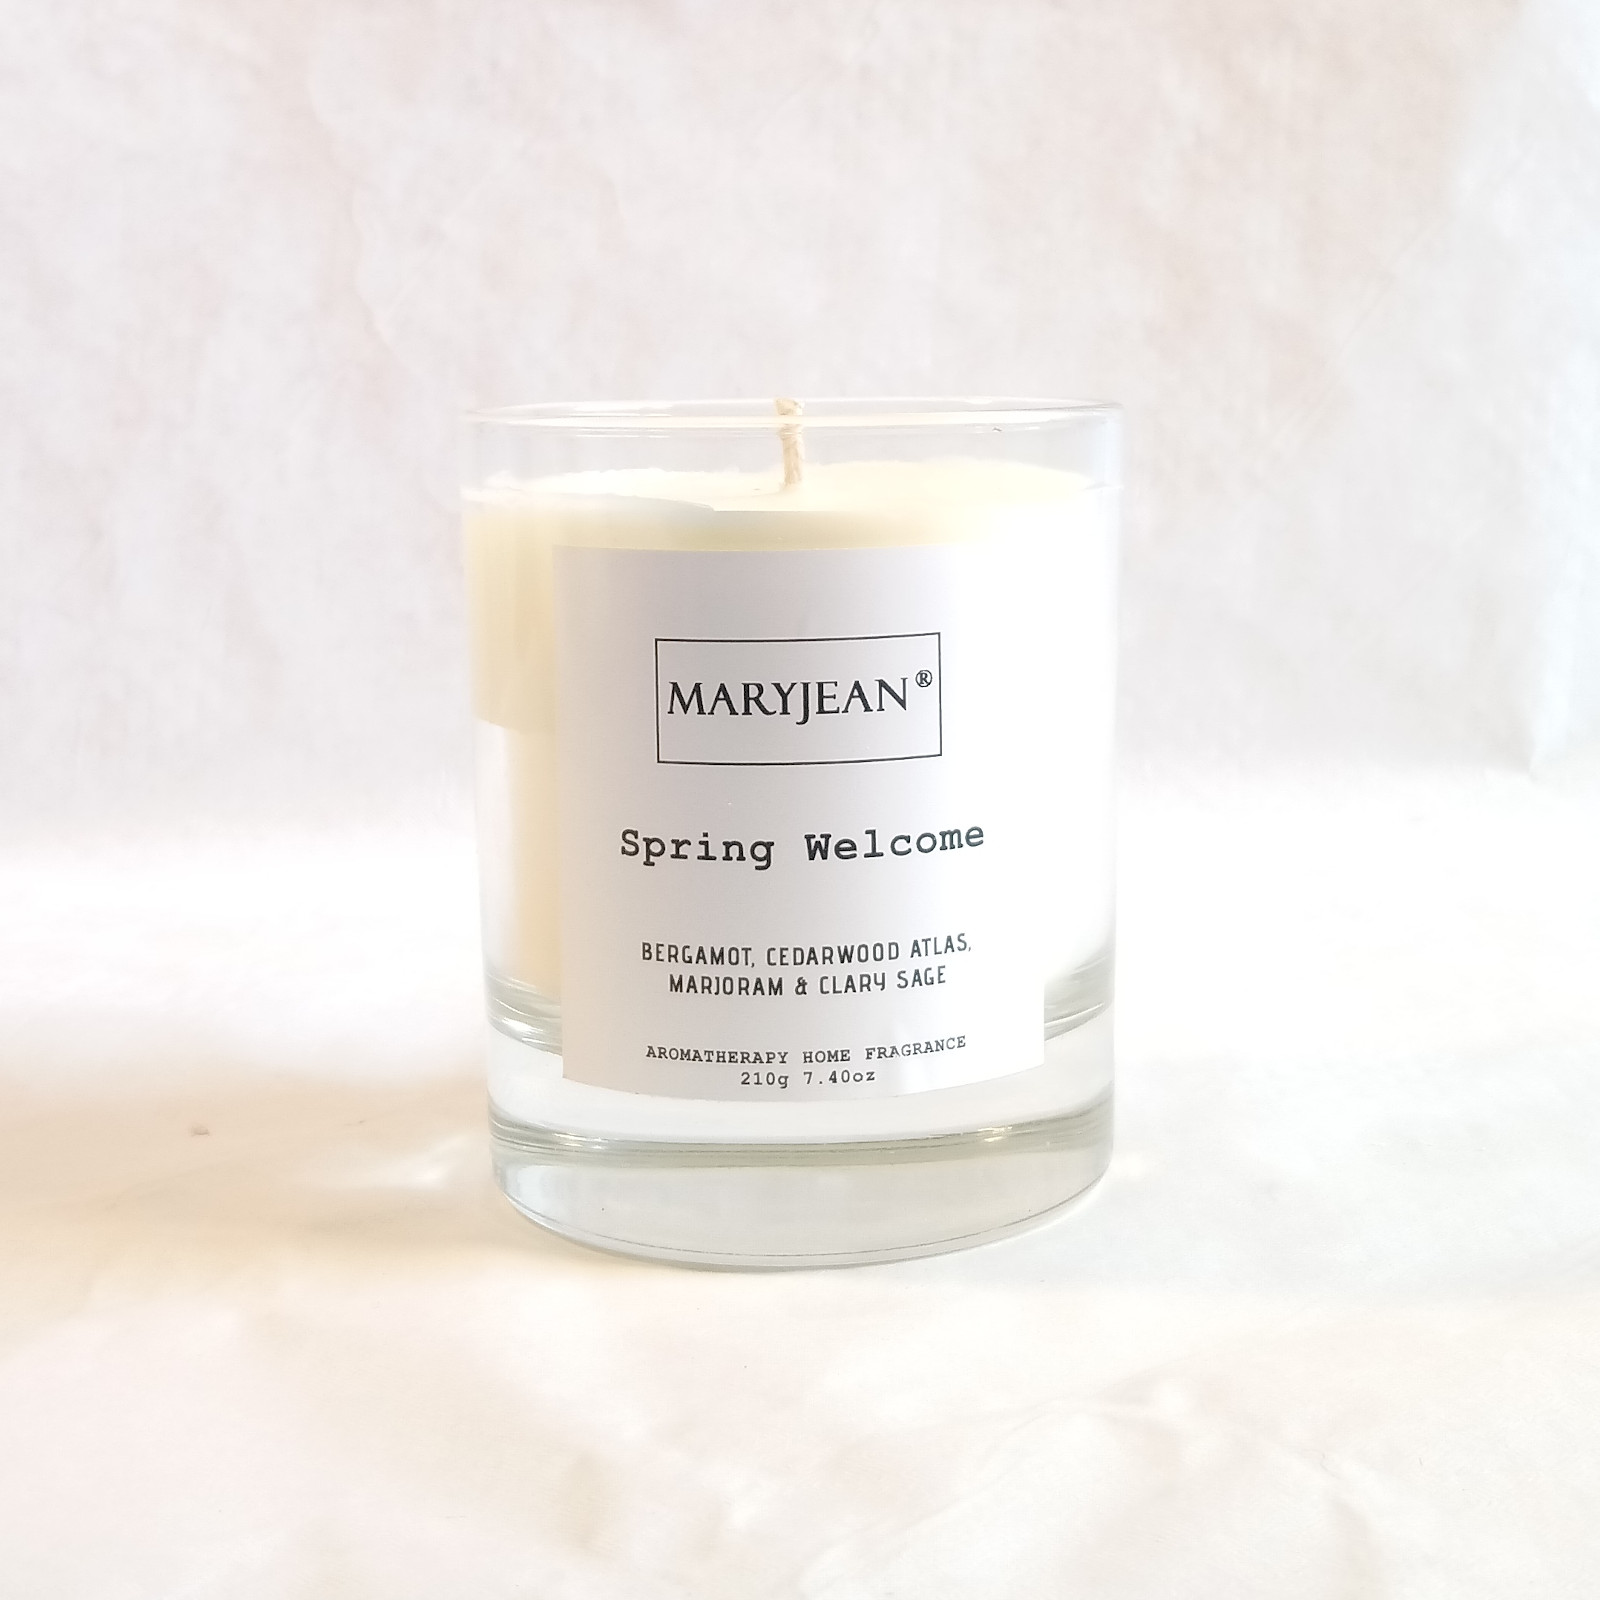 Mega sale luxurious home fragrance candles and reed diffusers mega savings on autumn clearance